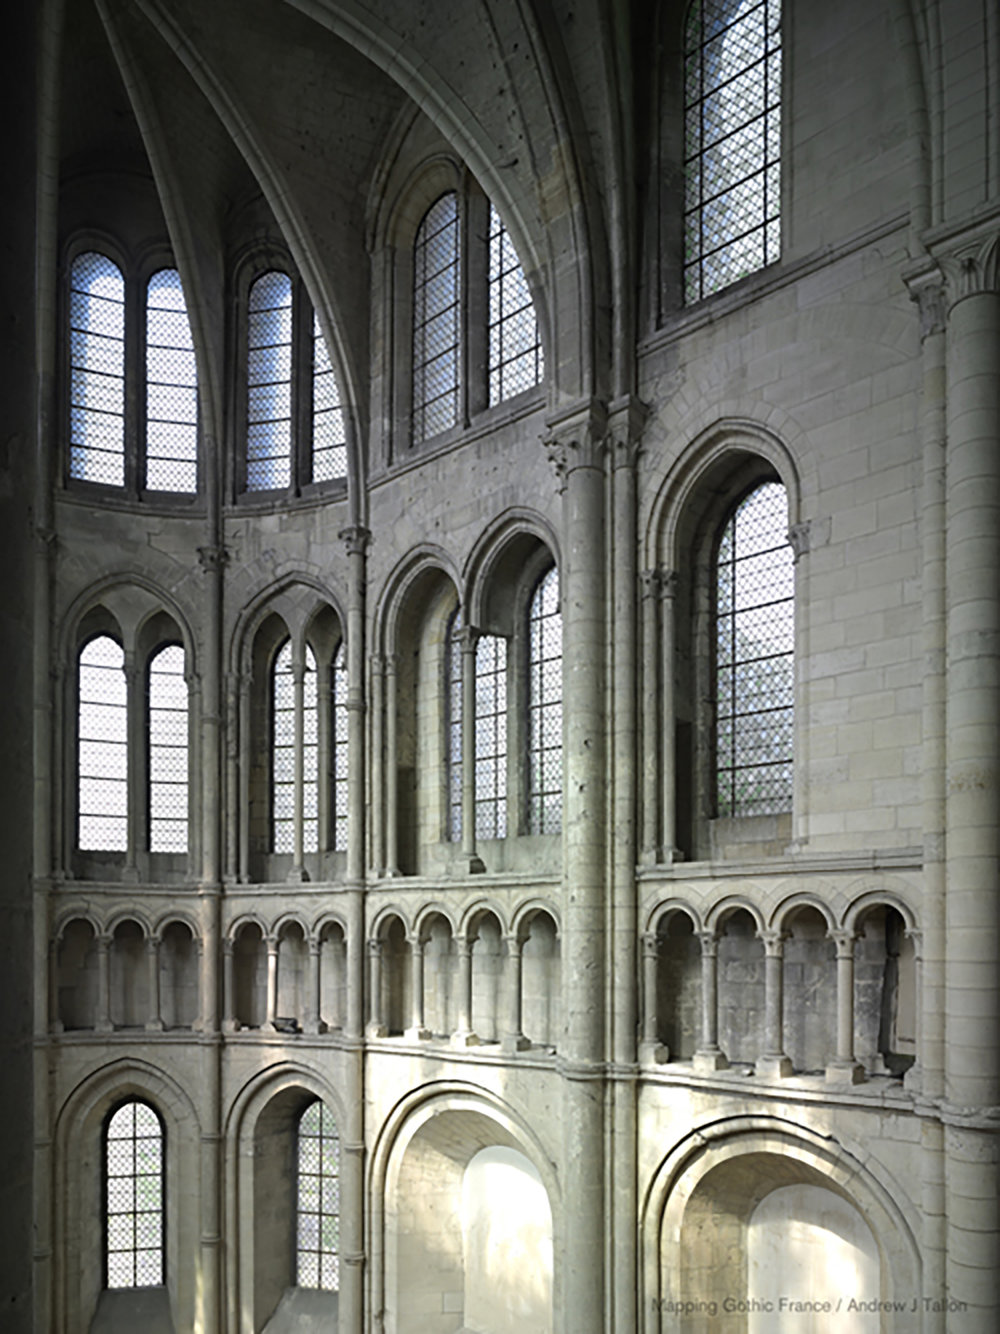 Figure 3: Noyon, Cathedral of Notre-Dame: view of the north transept. The rounded termination of the transept and inversion of the conventional levels of triforium and tribune are hallmarks of this age of experimentation.